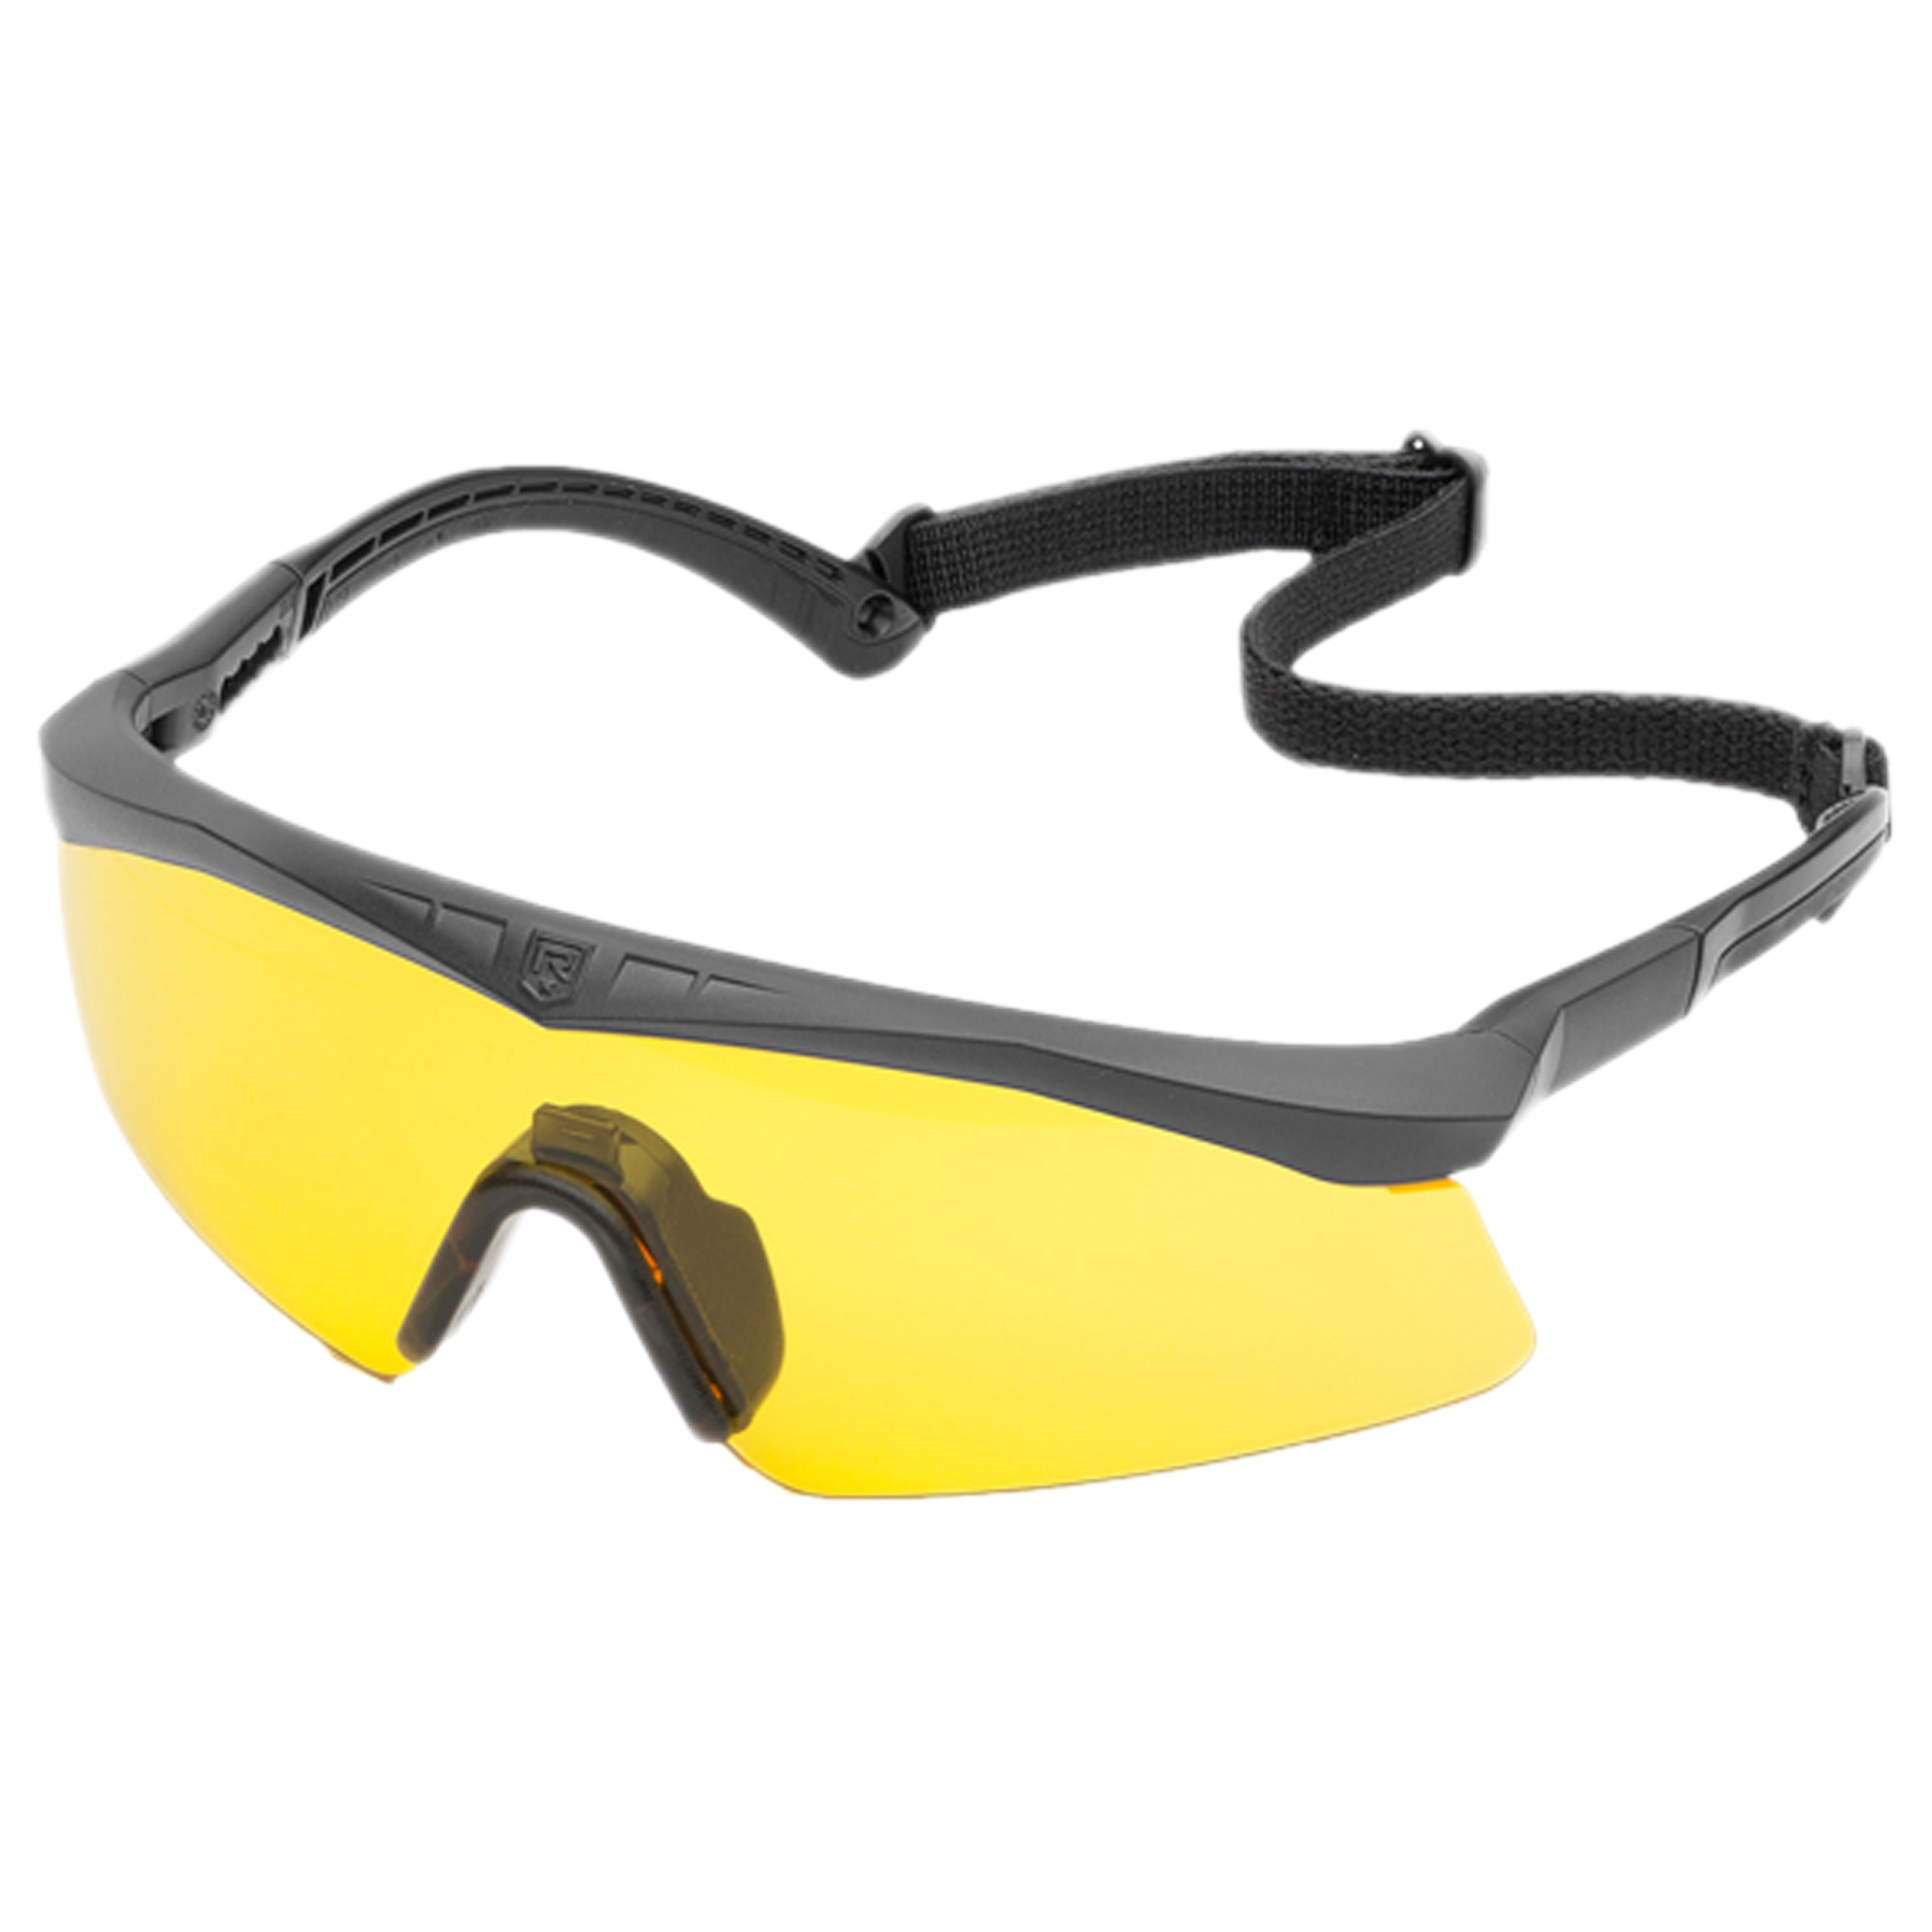 Revision Sawfly Max-Wrap Glasses Basic yellow